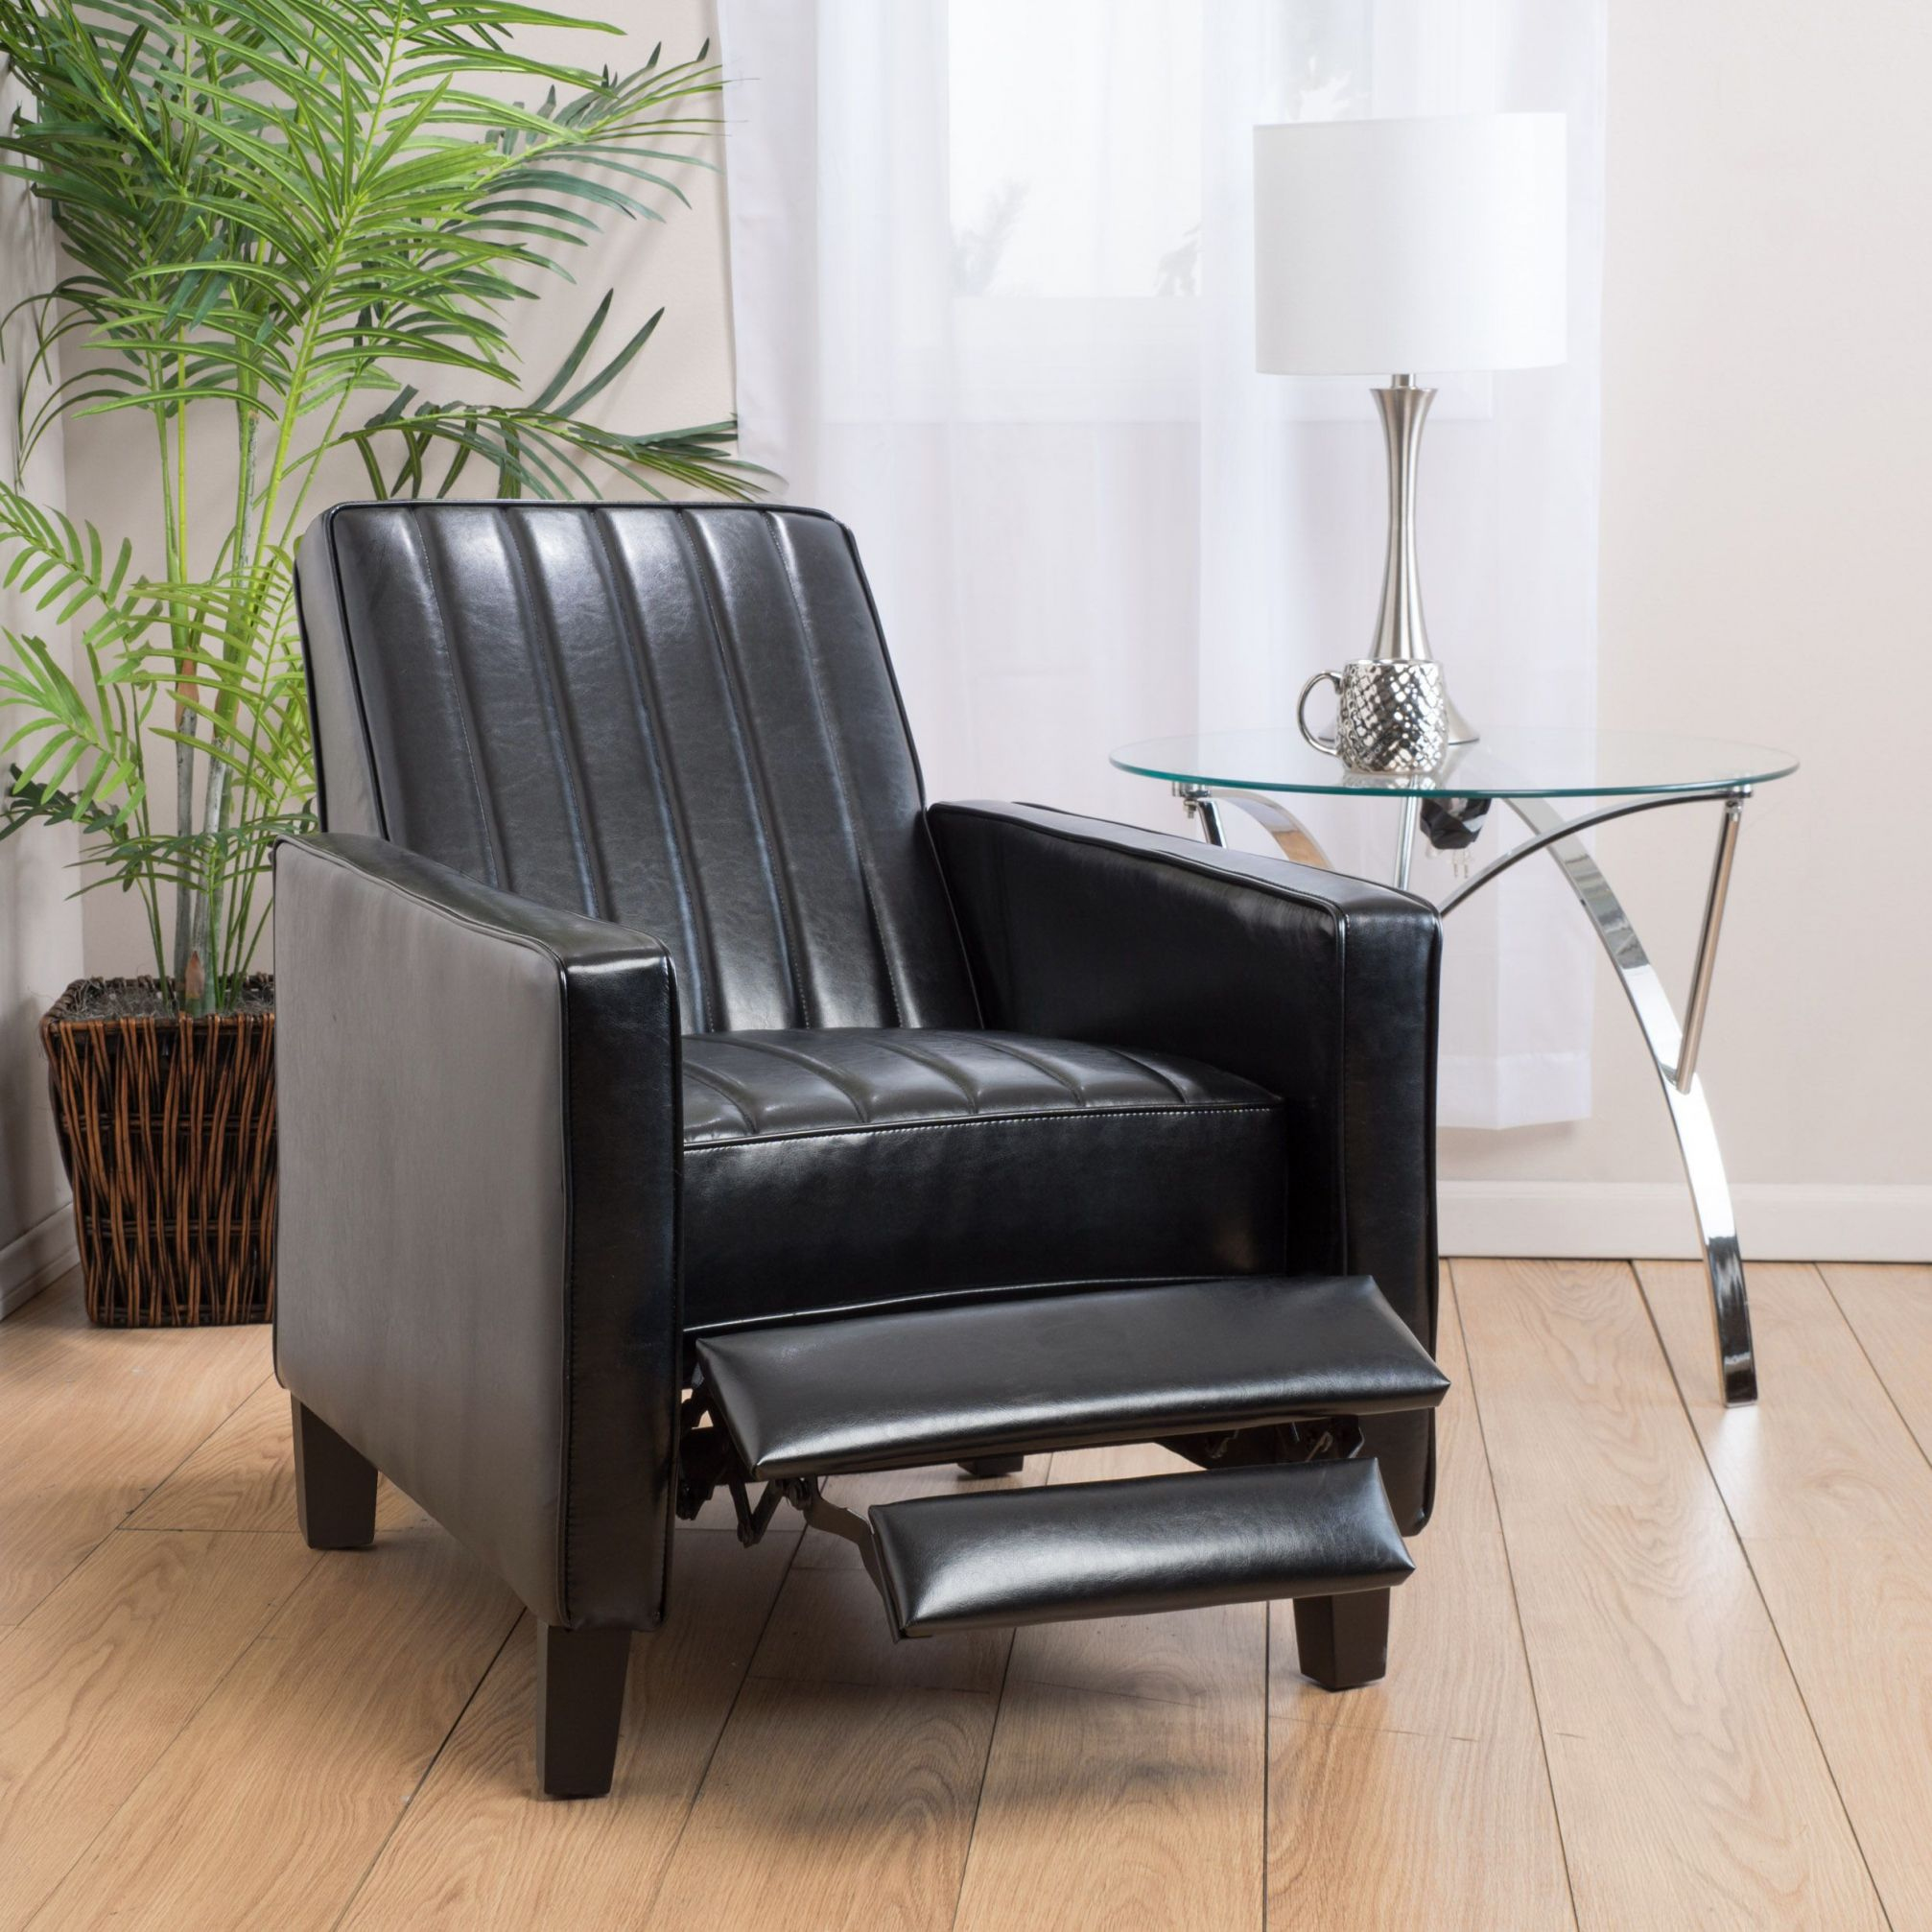 100+ Leather Recliners for Small Spaces - top Rated Interior Paint ...